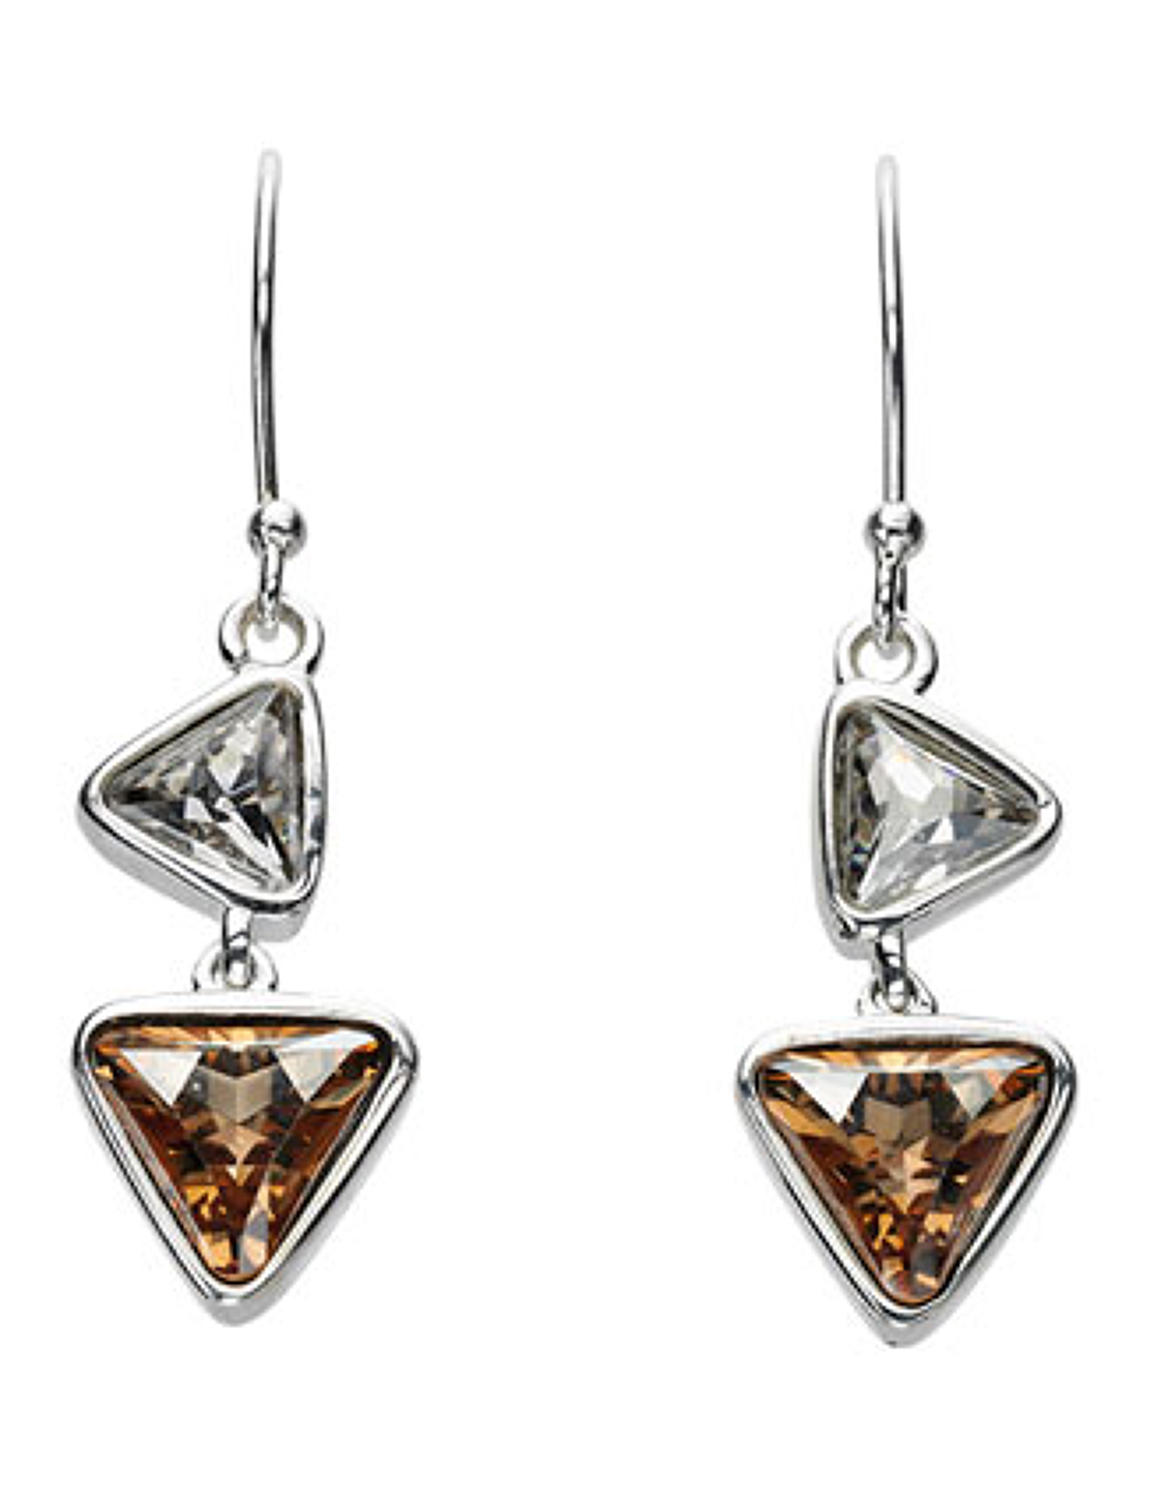 Sterling Silver Triangular Shaped Crystal Drop Earrings